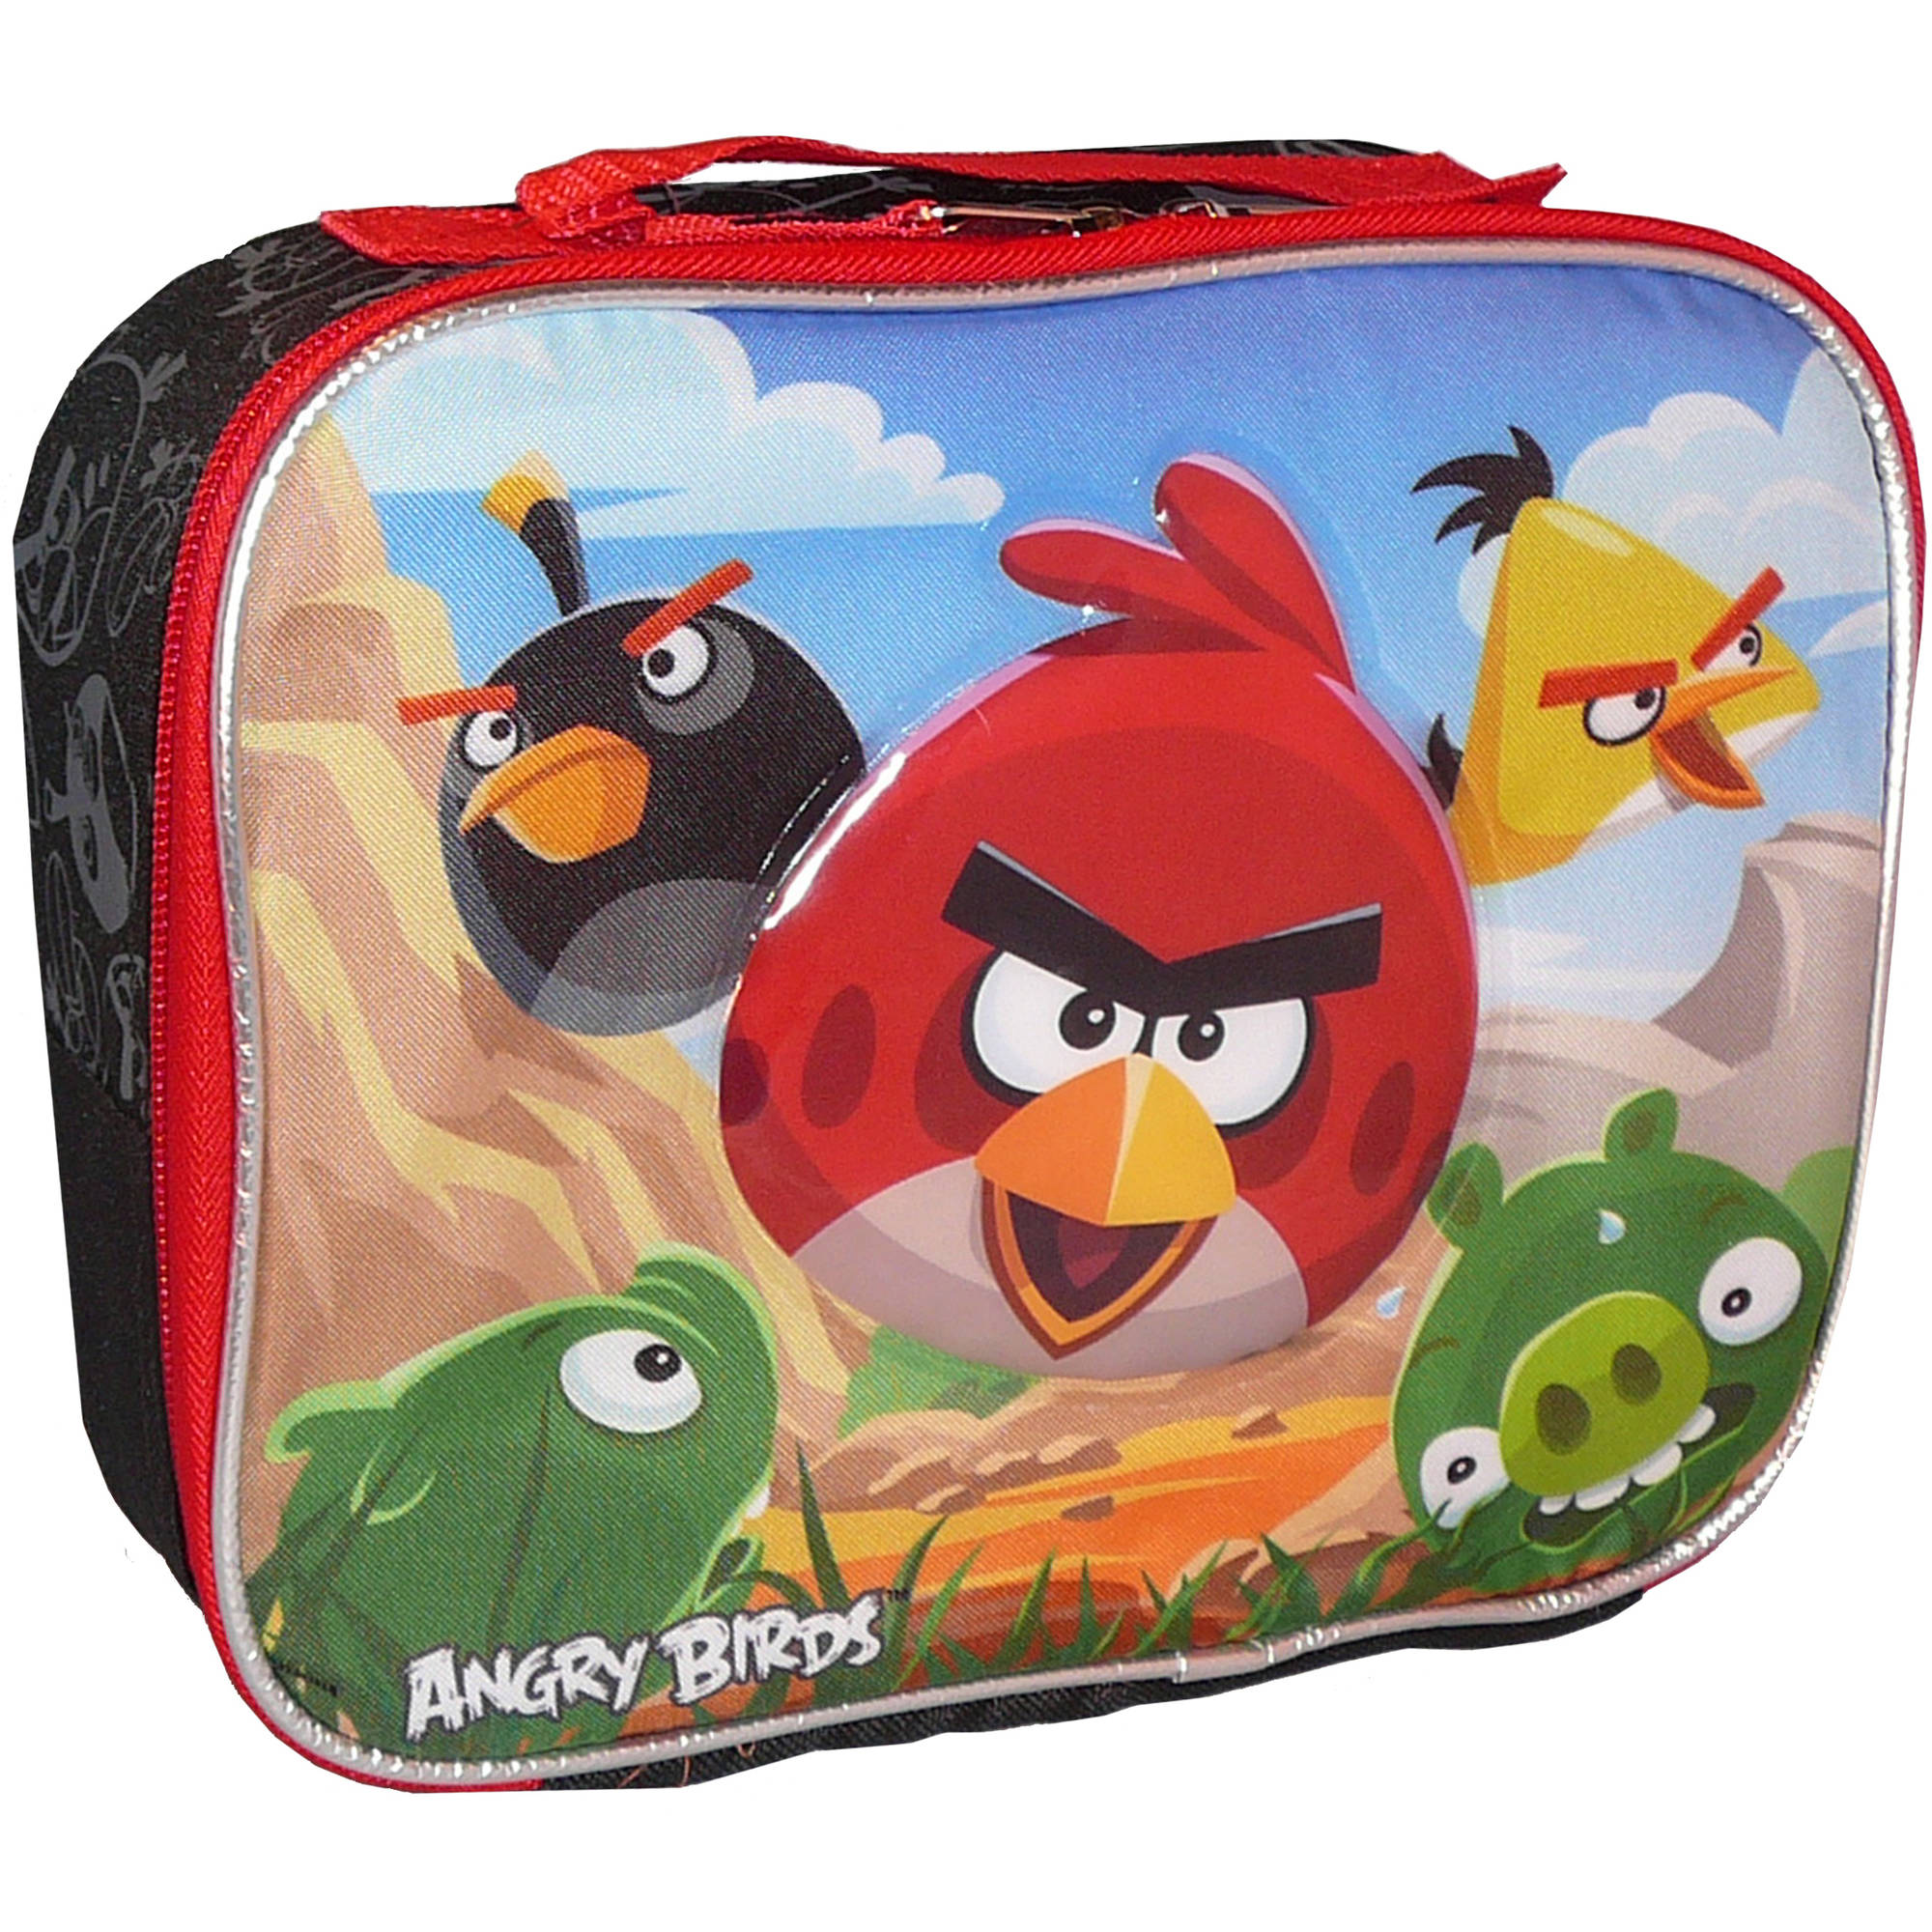 Image of Angry Birds Lunch Box